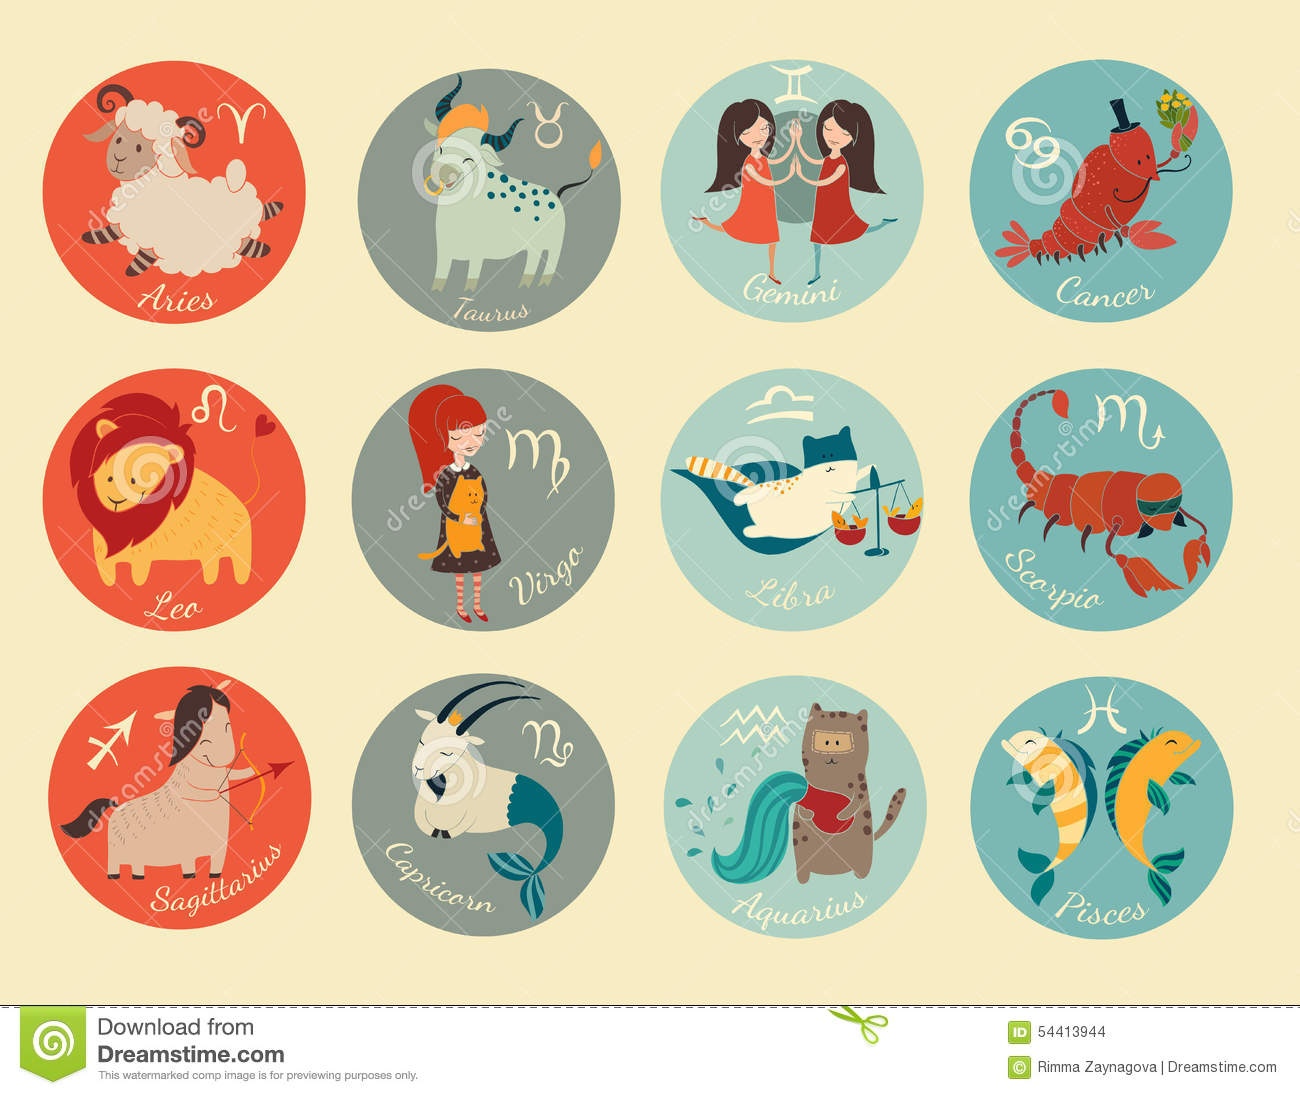 Cute Zodiac Signs Icon Stock Vector Illustration Of. Human Disease Signs Of Stroke. Civic Signs Of Stroke. Kos Signs Of Stroke. Raised Mole Signs. Booster Signs Of Stroke. Oct 24 Signs. 23 Week Signs Of Stroke. Artsy Signs Of Stroke